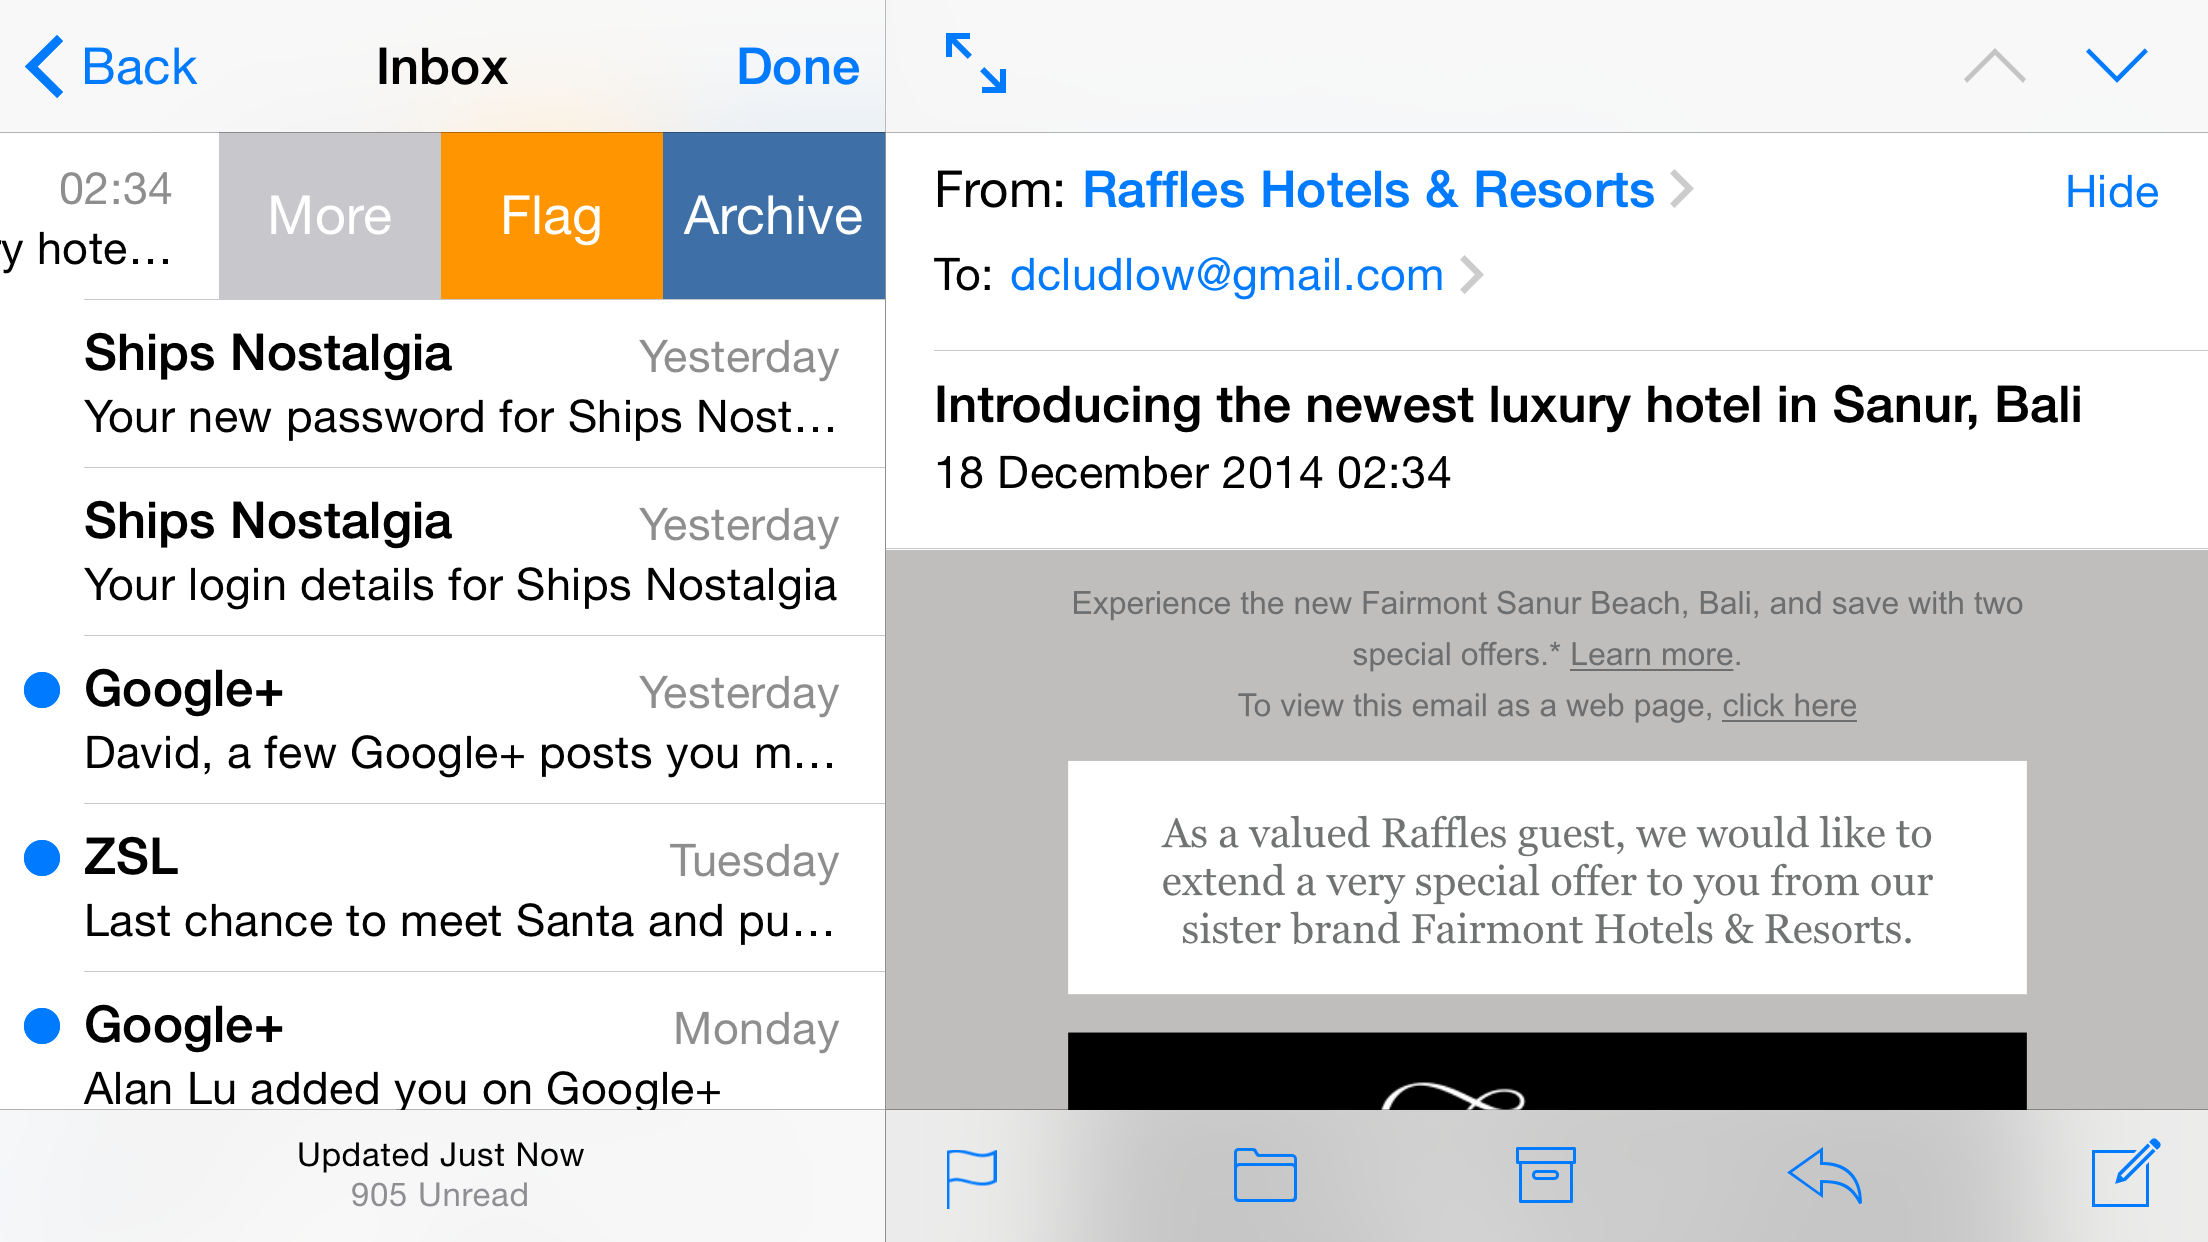 How to delete archived emails in gmail on ipad